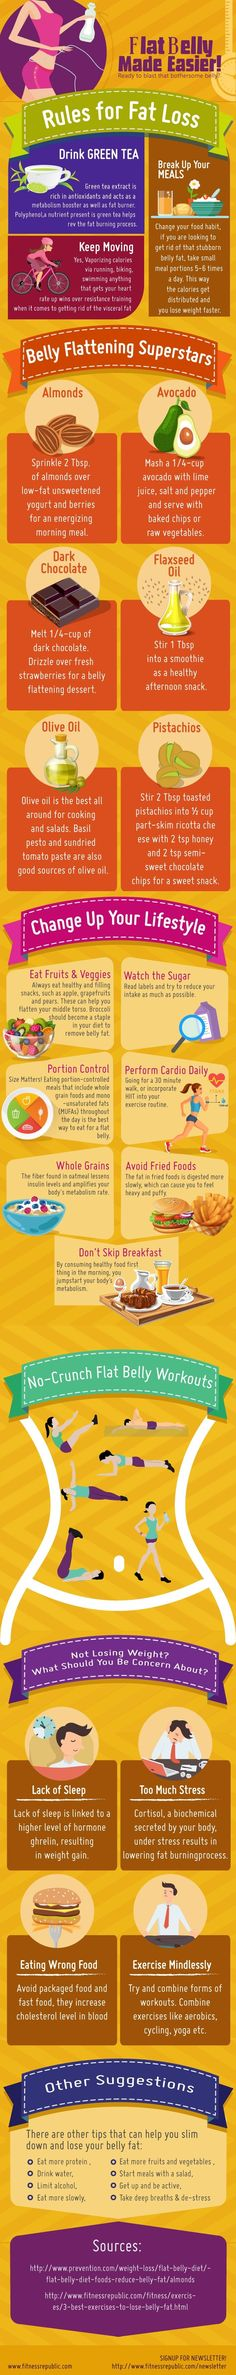 Infographic: Tips For Attaining A Flat Stomach, What To Eat And Do To Burn Fat - DesignTAXI.com pinning for the chocolate